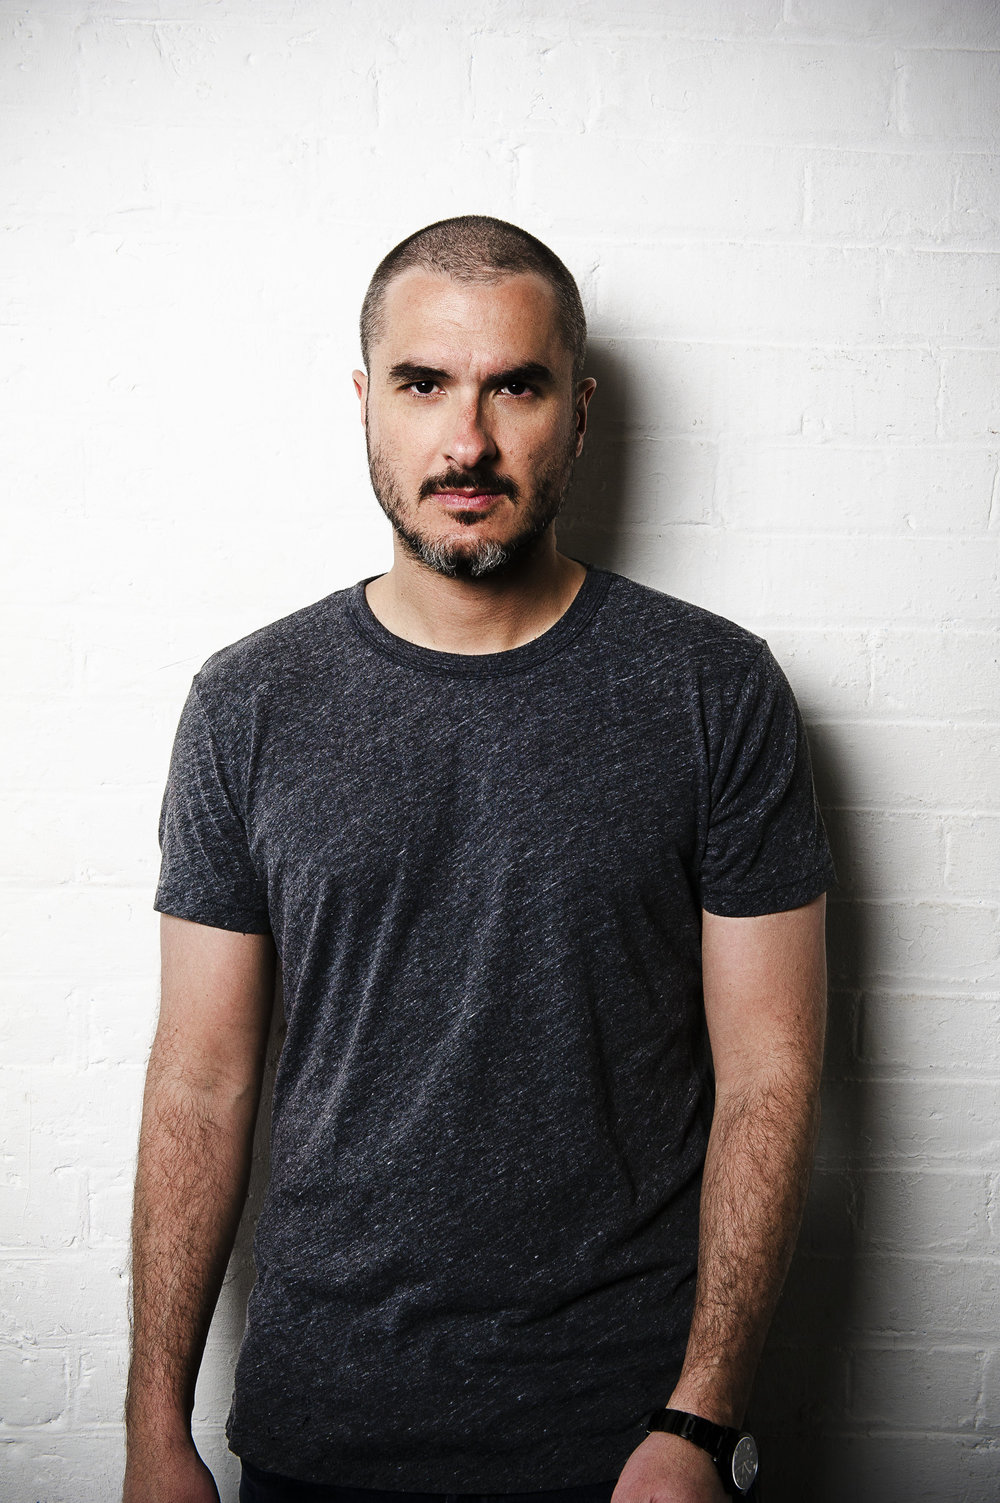 18057-4380100-Radio-1-Presenter-Shots-2013---Zane-Lowe_final_4407100_4407090.jpg